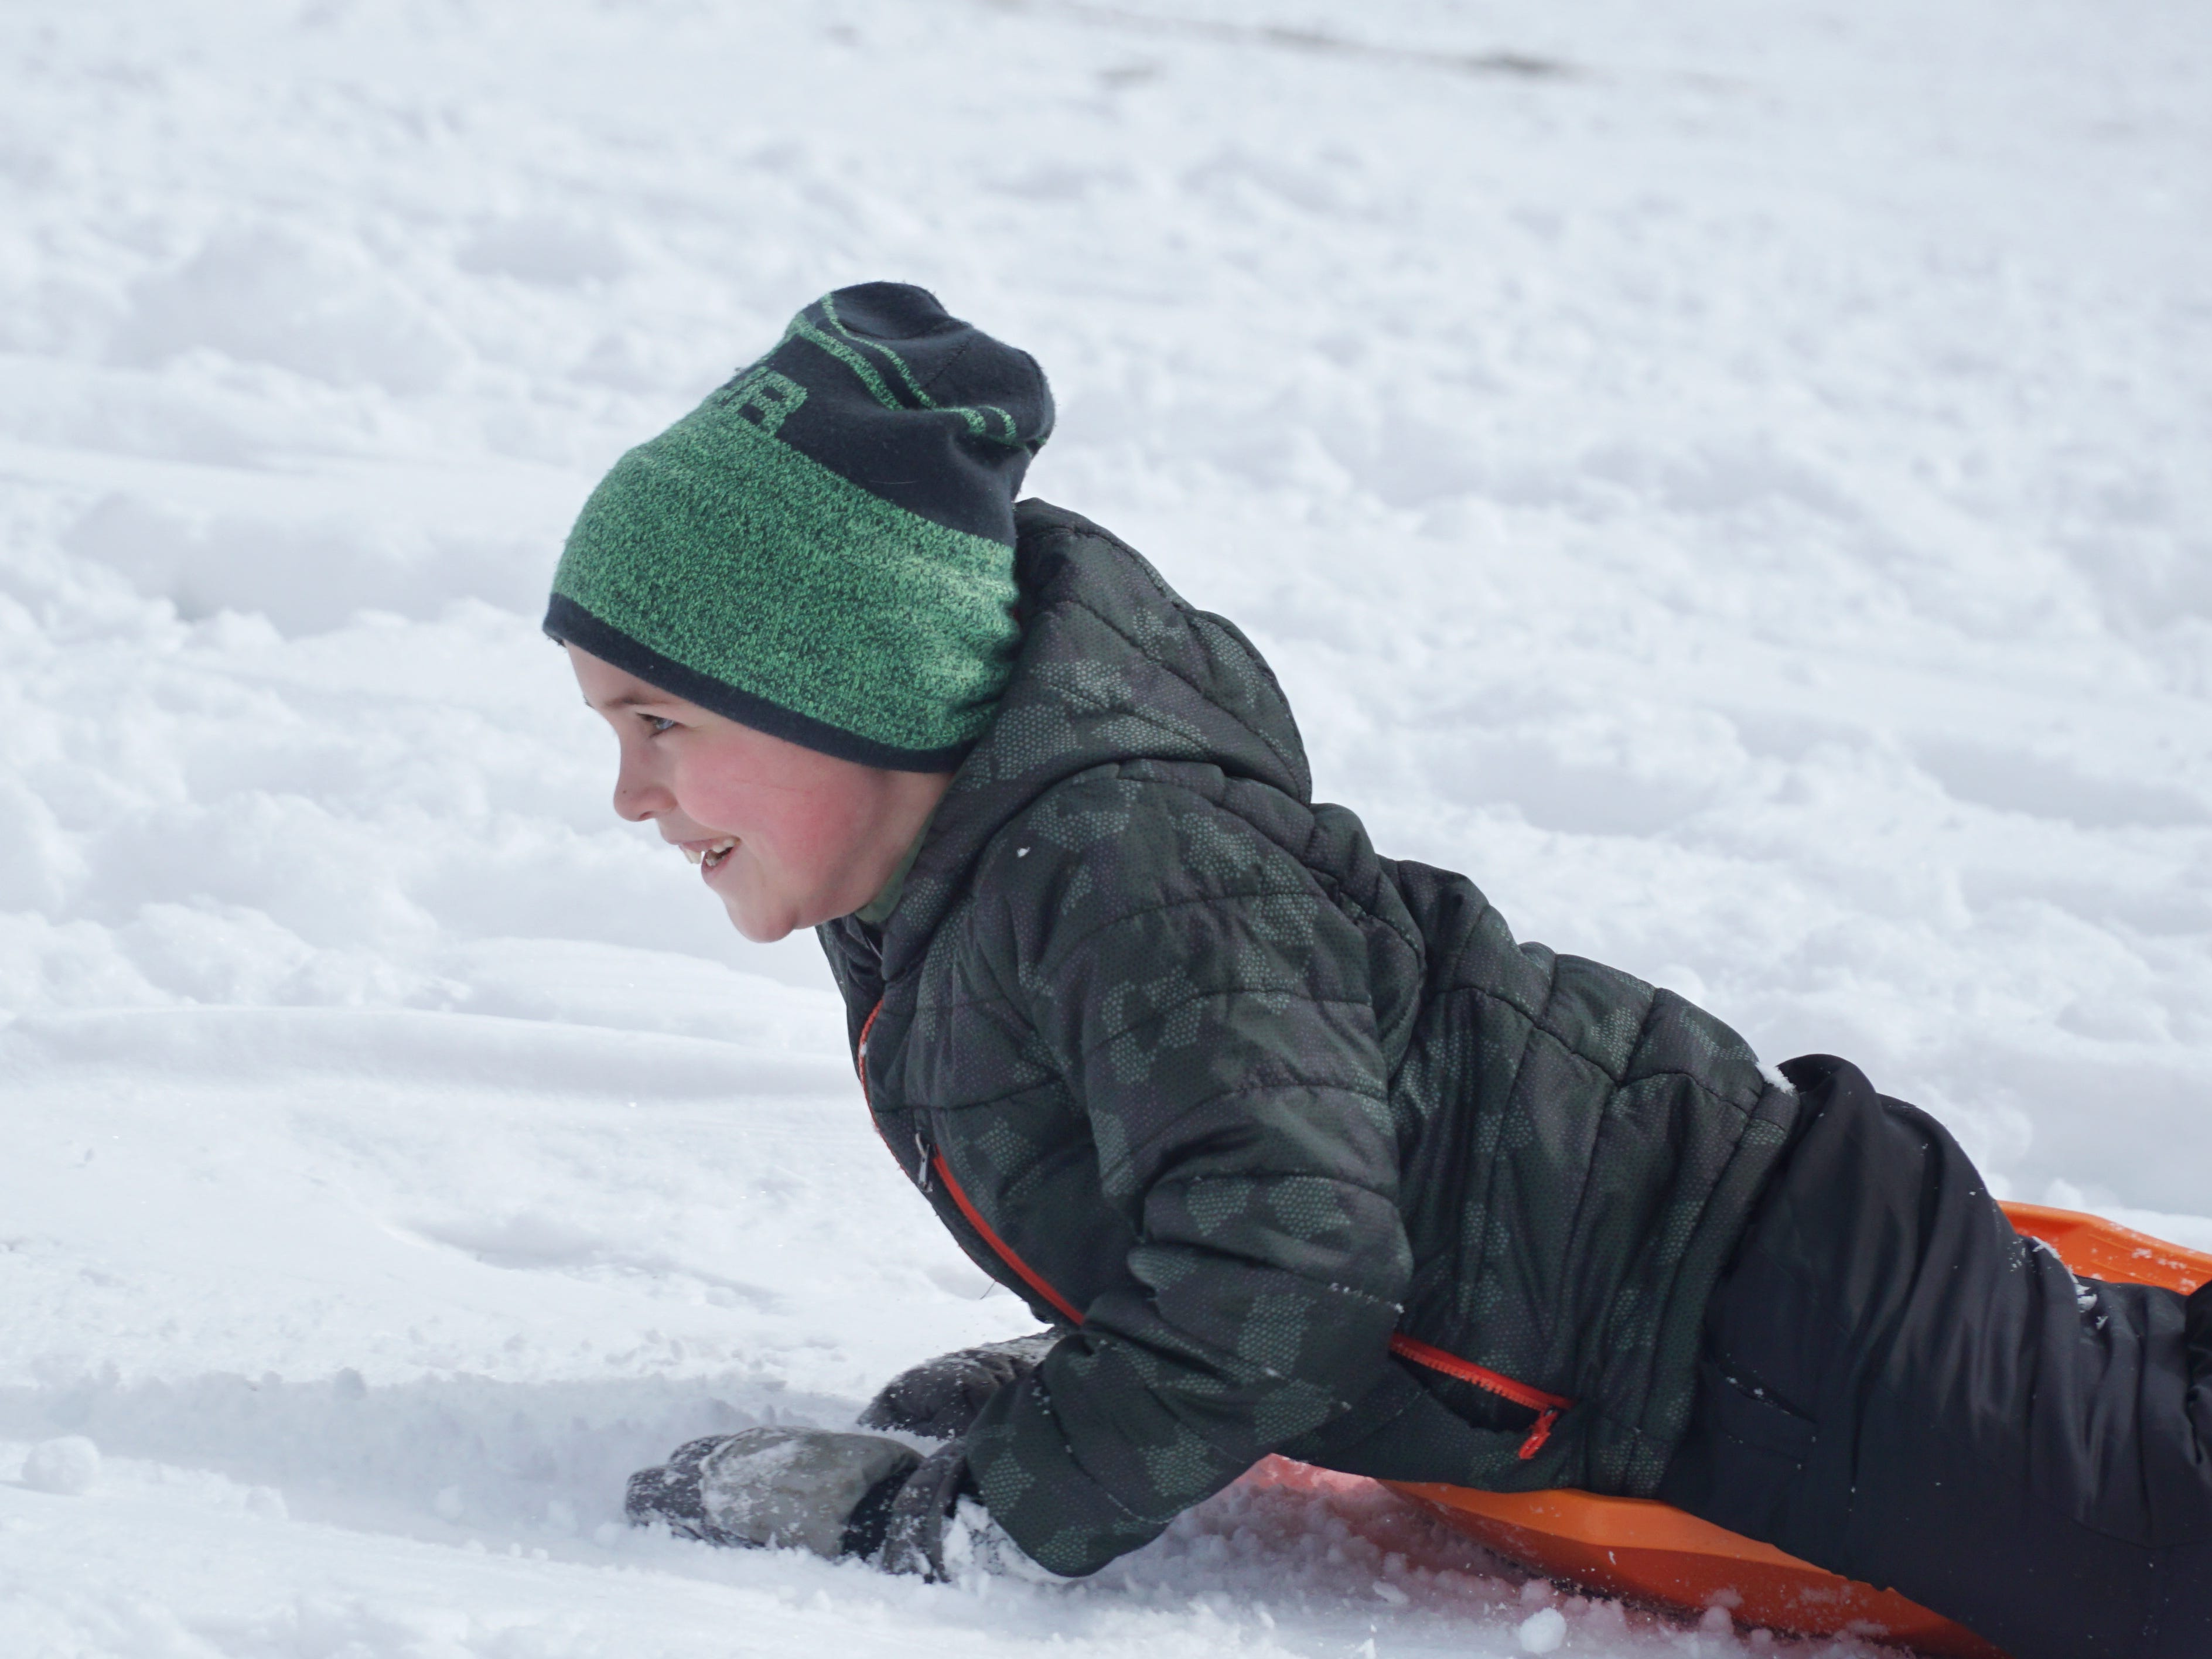 Mason Latimer, 7, smiles as he begins to head downhill backwards while sledding in Farmington on Feb. 18.